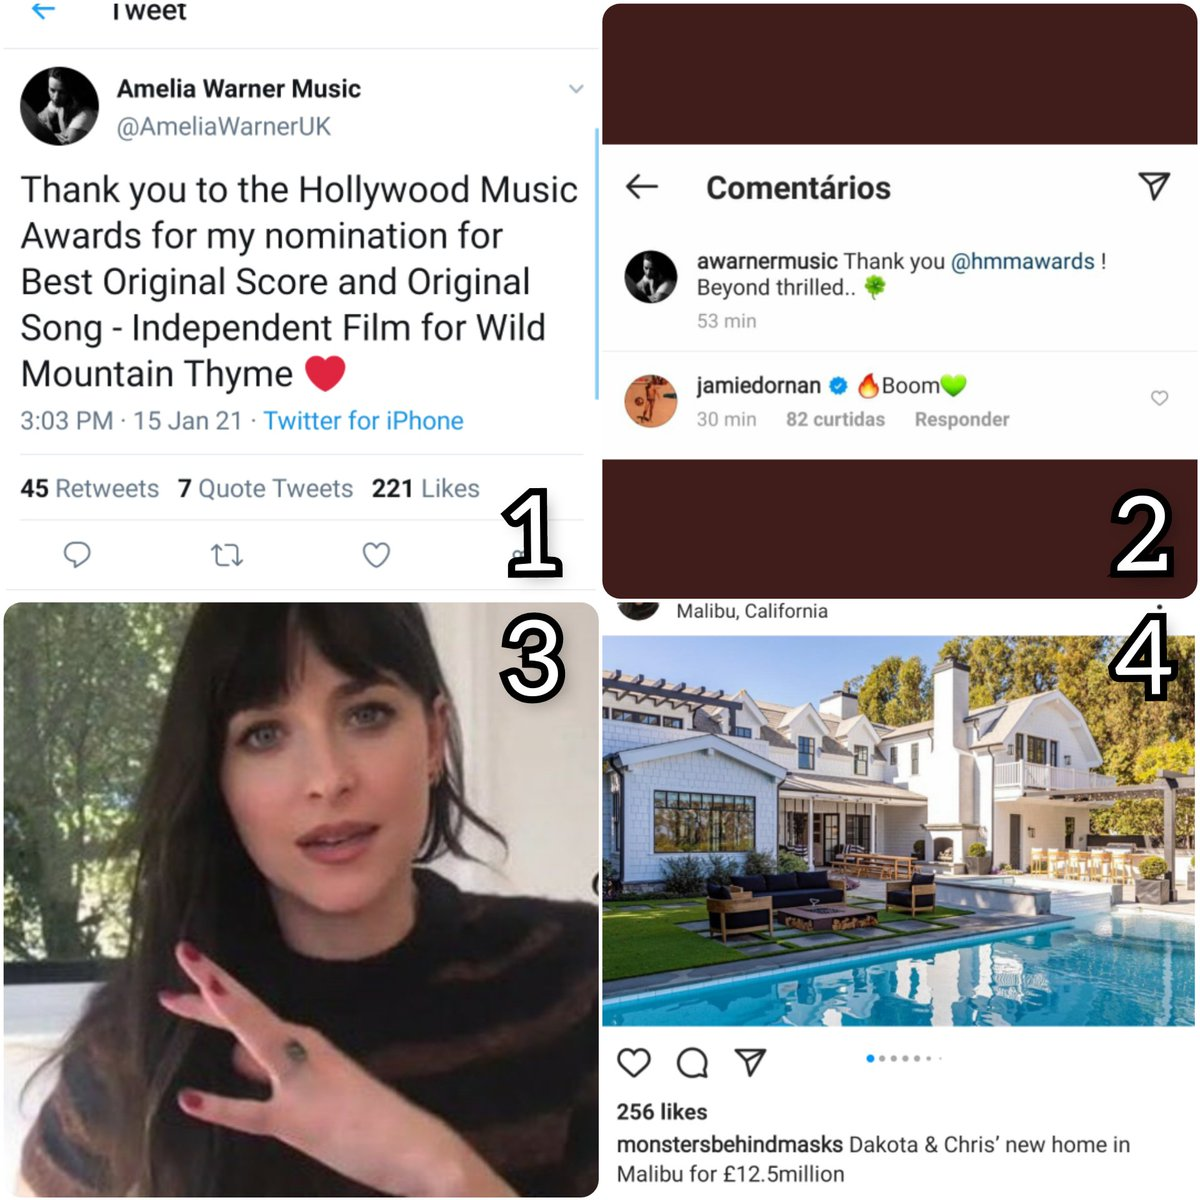 All within 24 hours: 1. Millie was nominated for two awards. 2. Jamie commented on Millie's IG post. 3. Dakota did an interview wearing her ring. 4.There's news that Dakota bought a new home with Chris.    ➡️The duhmies are shook 😂🤣  #JamieDornan #AmeliaWarner #staymad #duhmies